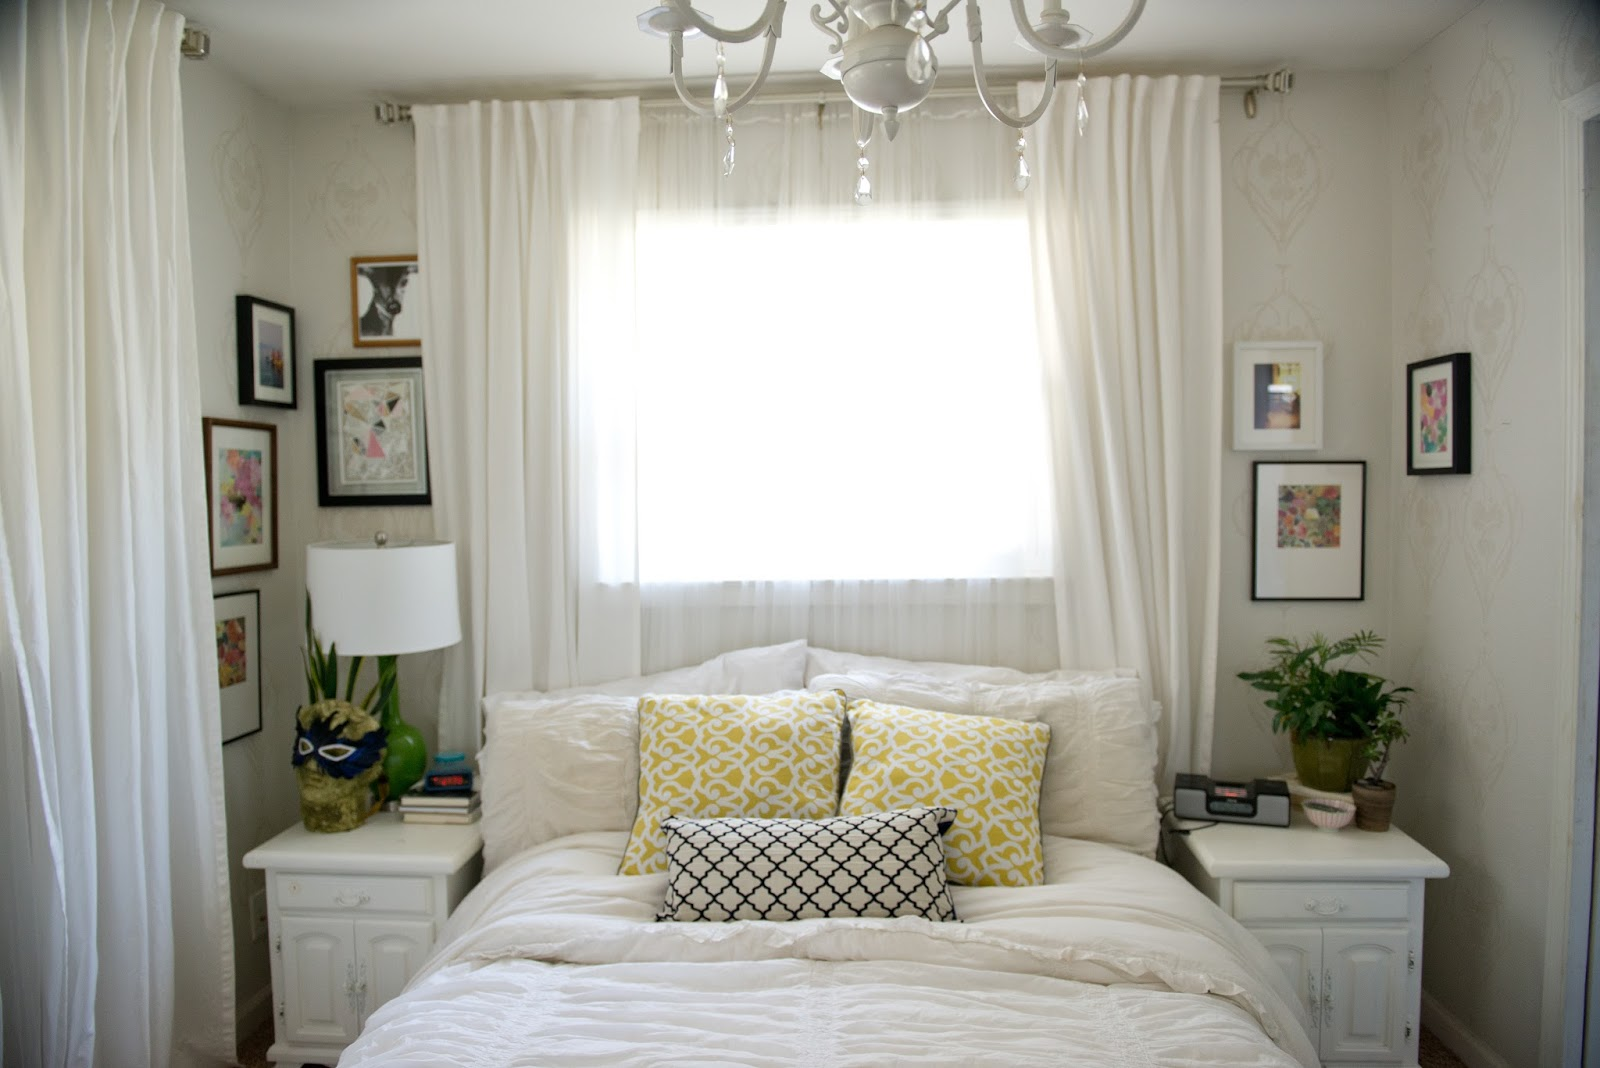 Domestic Fashionista A Colorful Bedroom For Now